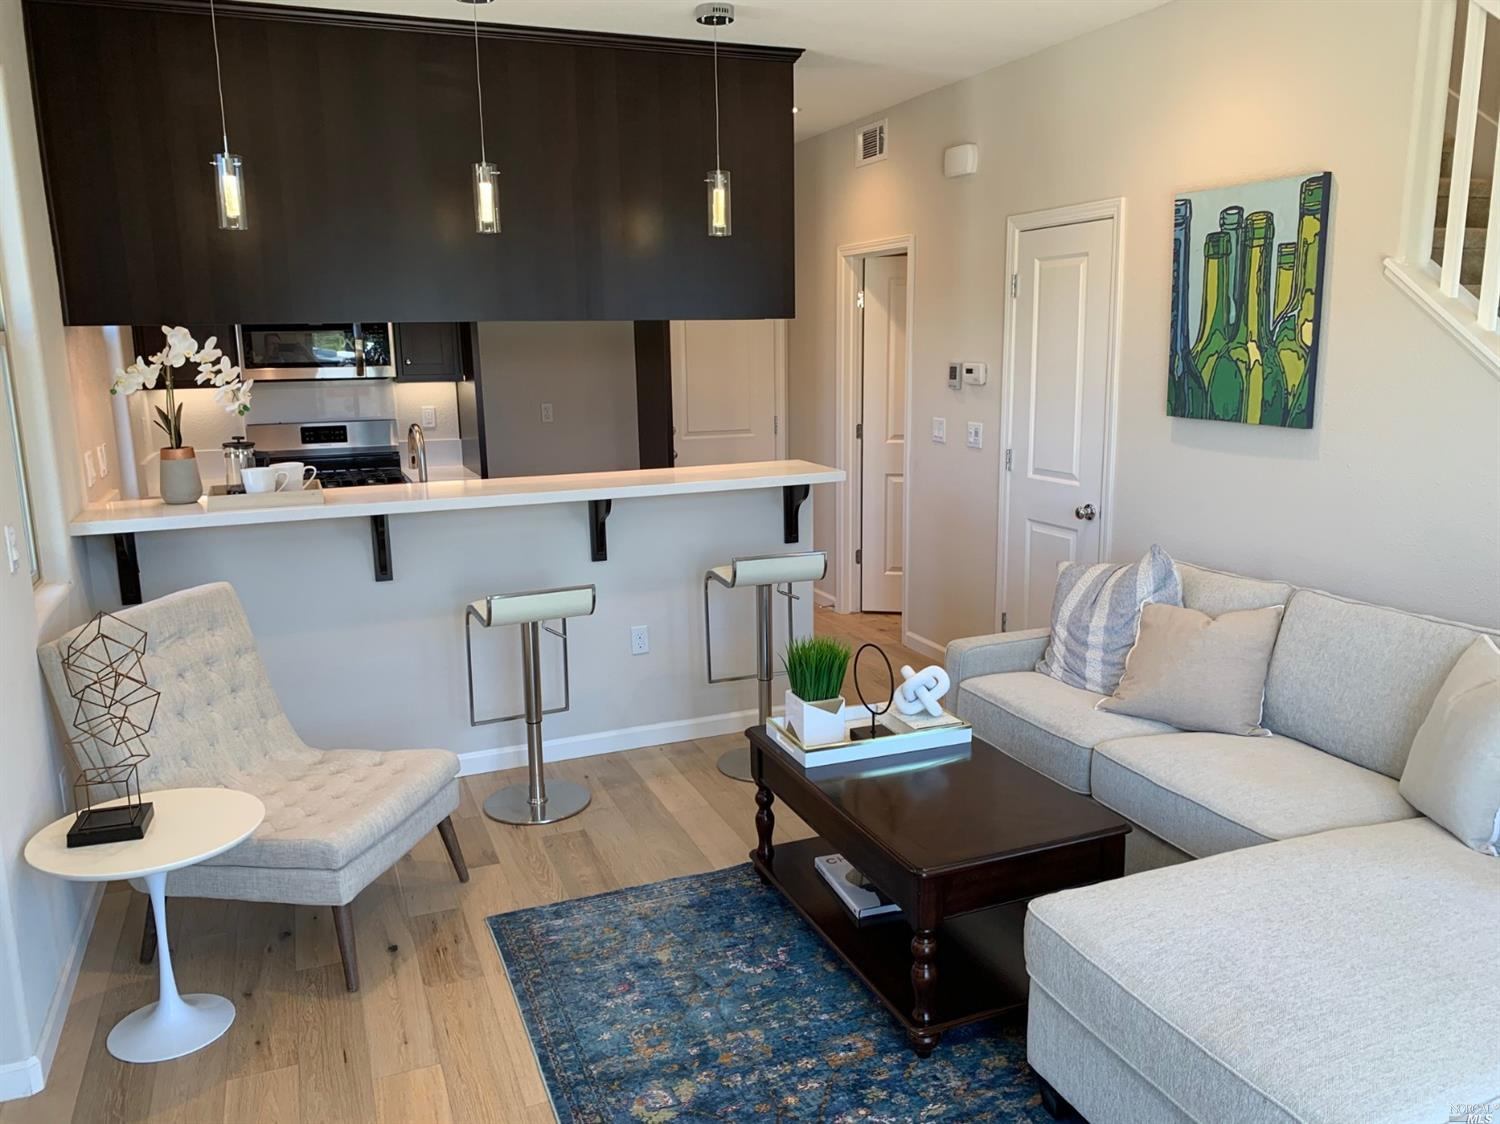 New Napa Home!  Close to Shopping and Transportation. Modern floor plan features Kitchen, Breakfast Bar, Living Room, 1/2 Bath and Garage with interior access on Main Floor.  Spacious Suite with Walk In Closet and Den Suite on Second Floor.  Tankless water heater, Central Heat and Air Conditioning.